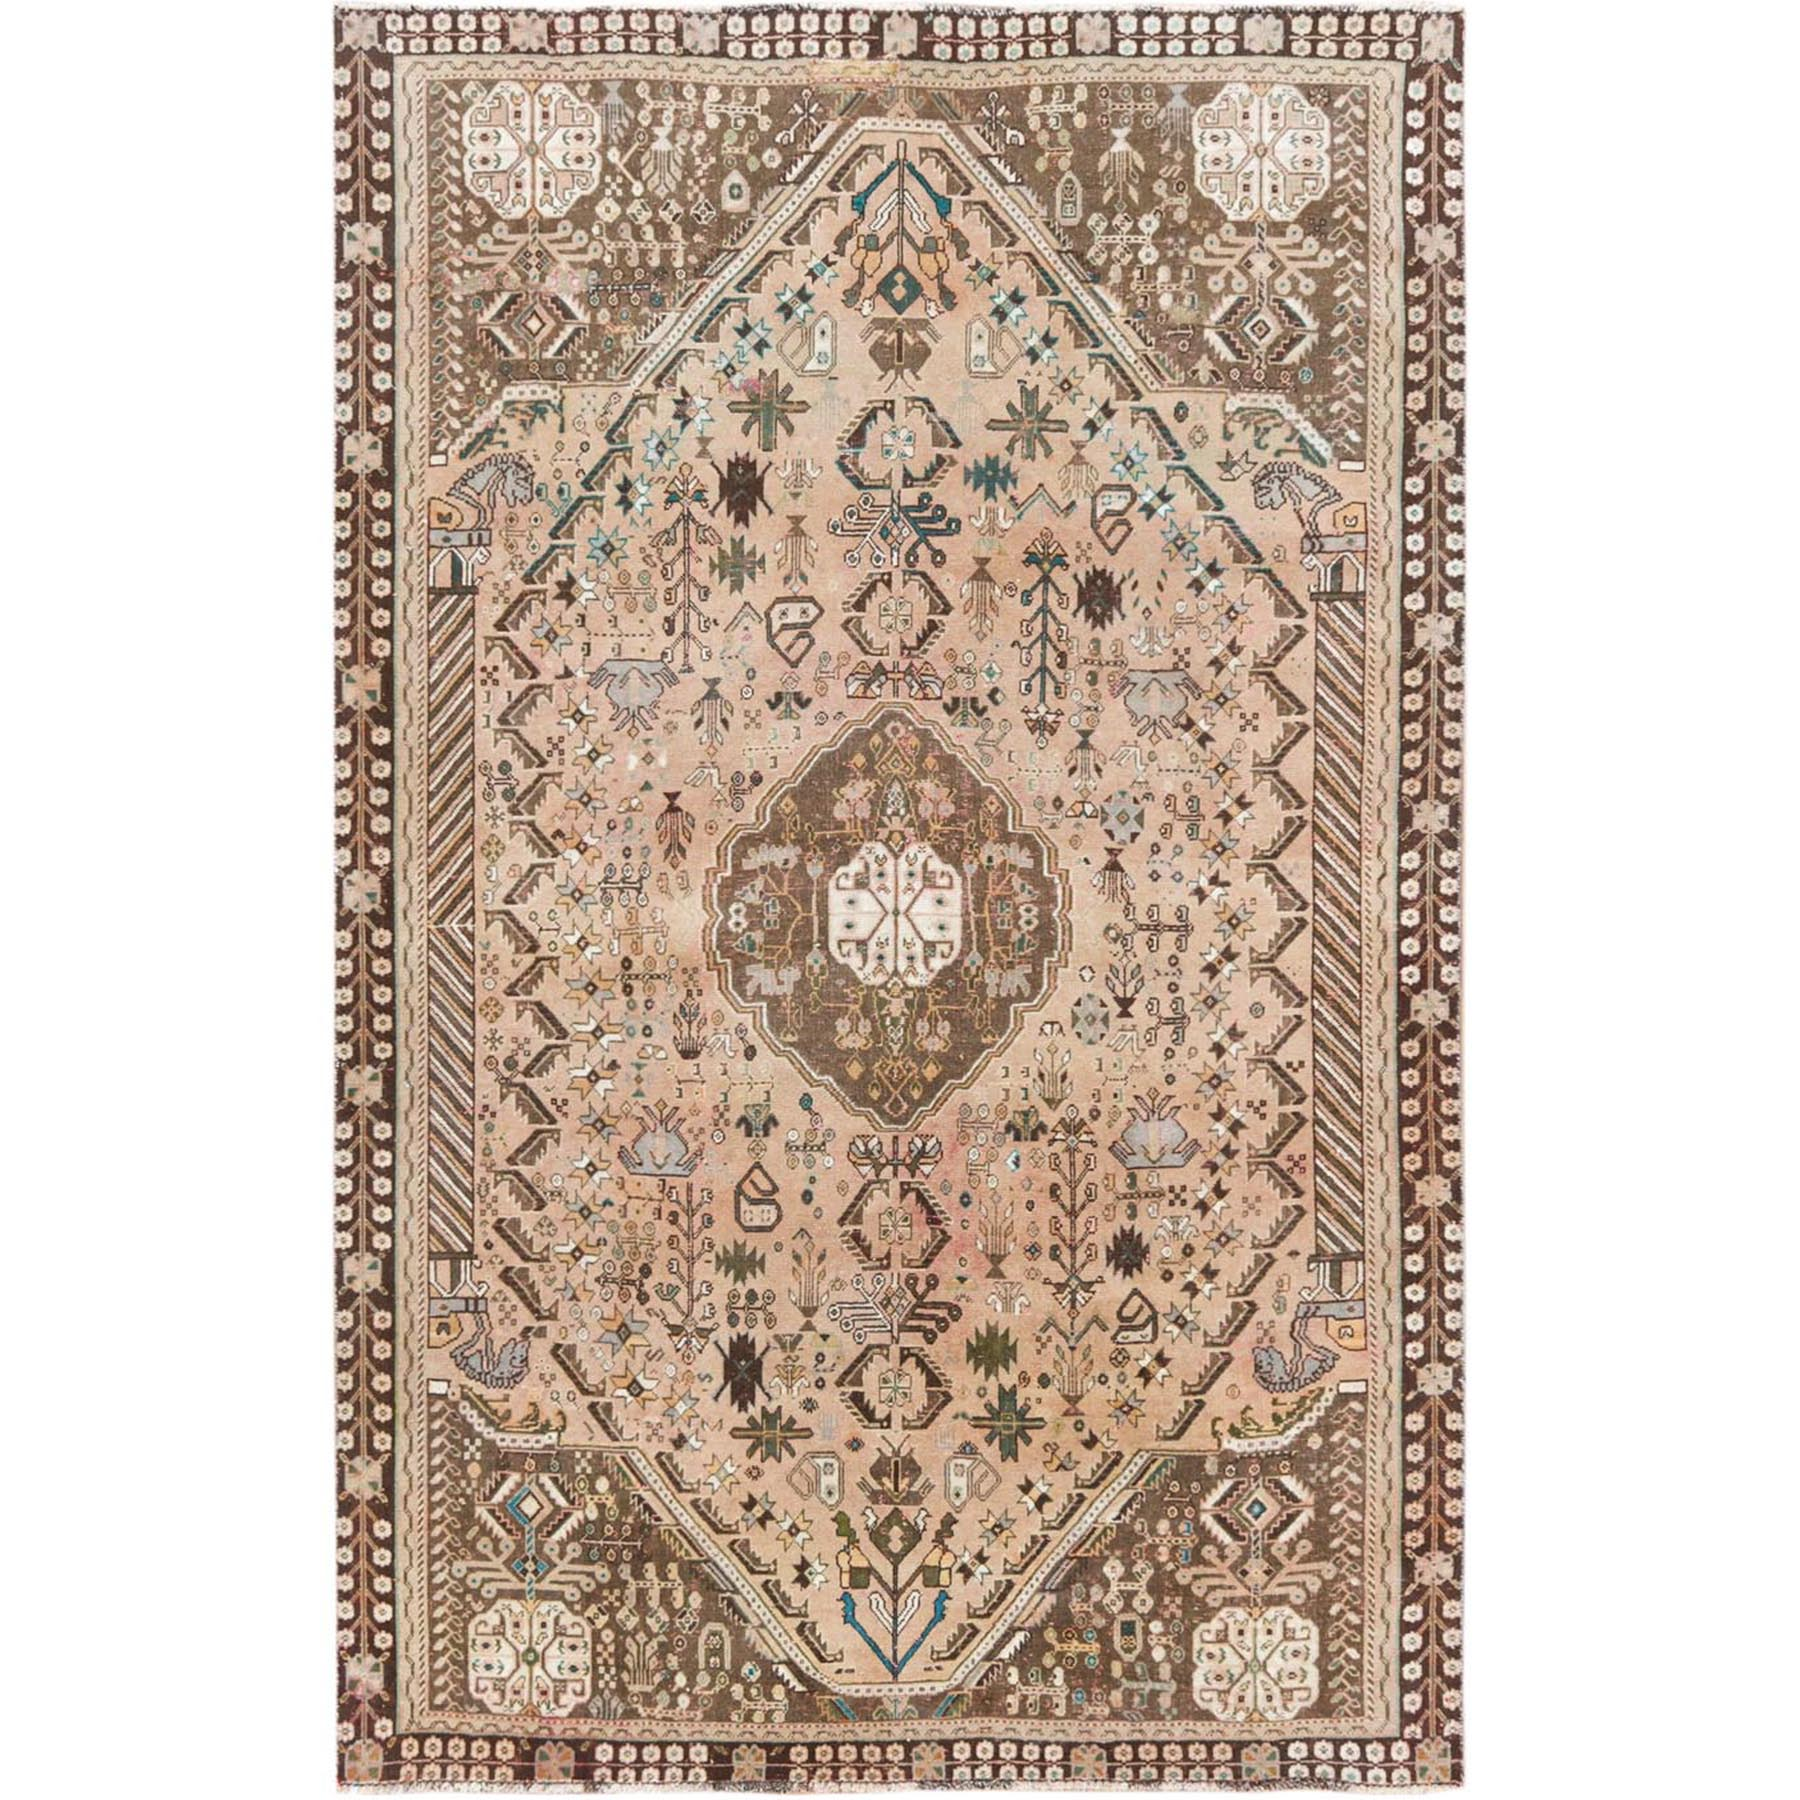 "5'6""x8'8"" Vintage Pure Wool Tan Color Persian Shiraz Distressed Bohemian Clean Hand Knotted Oriental Rug"